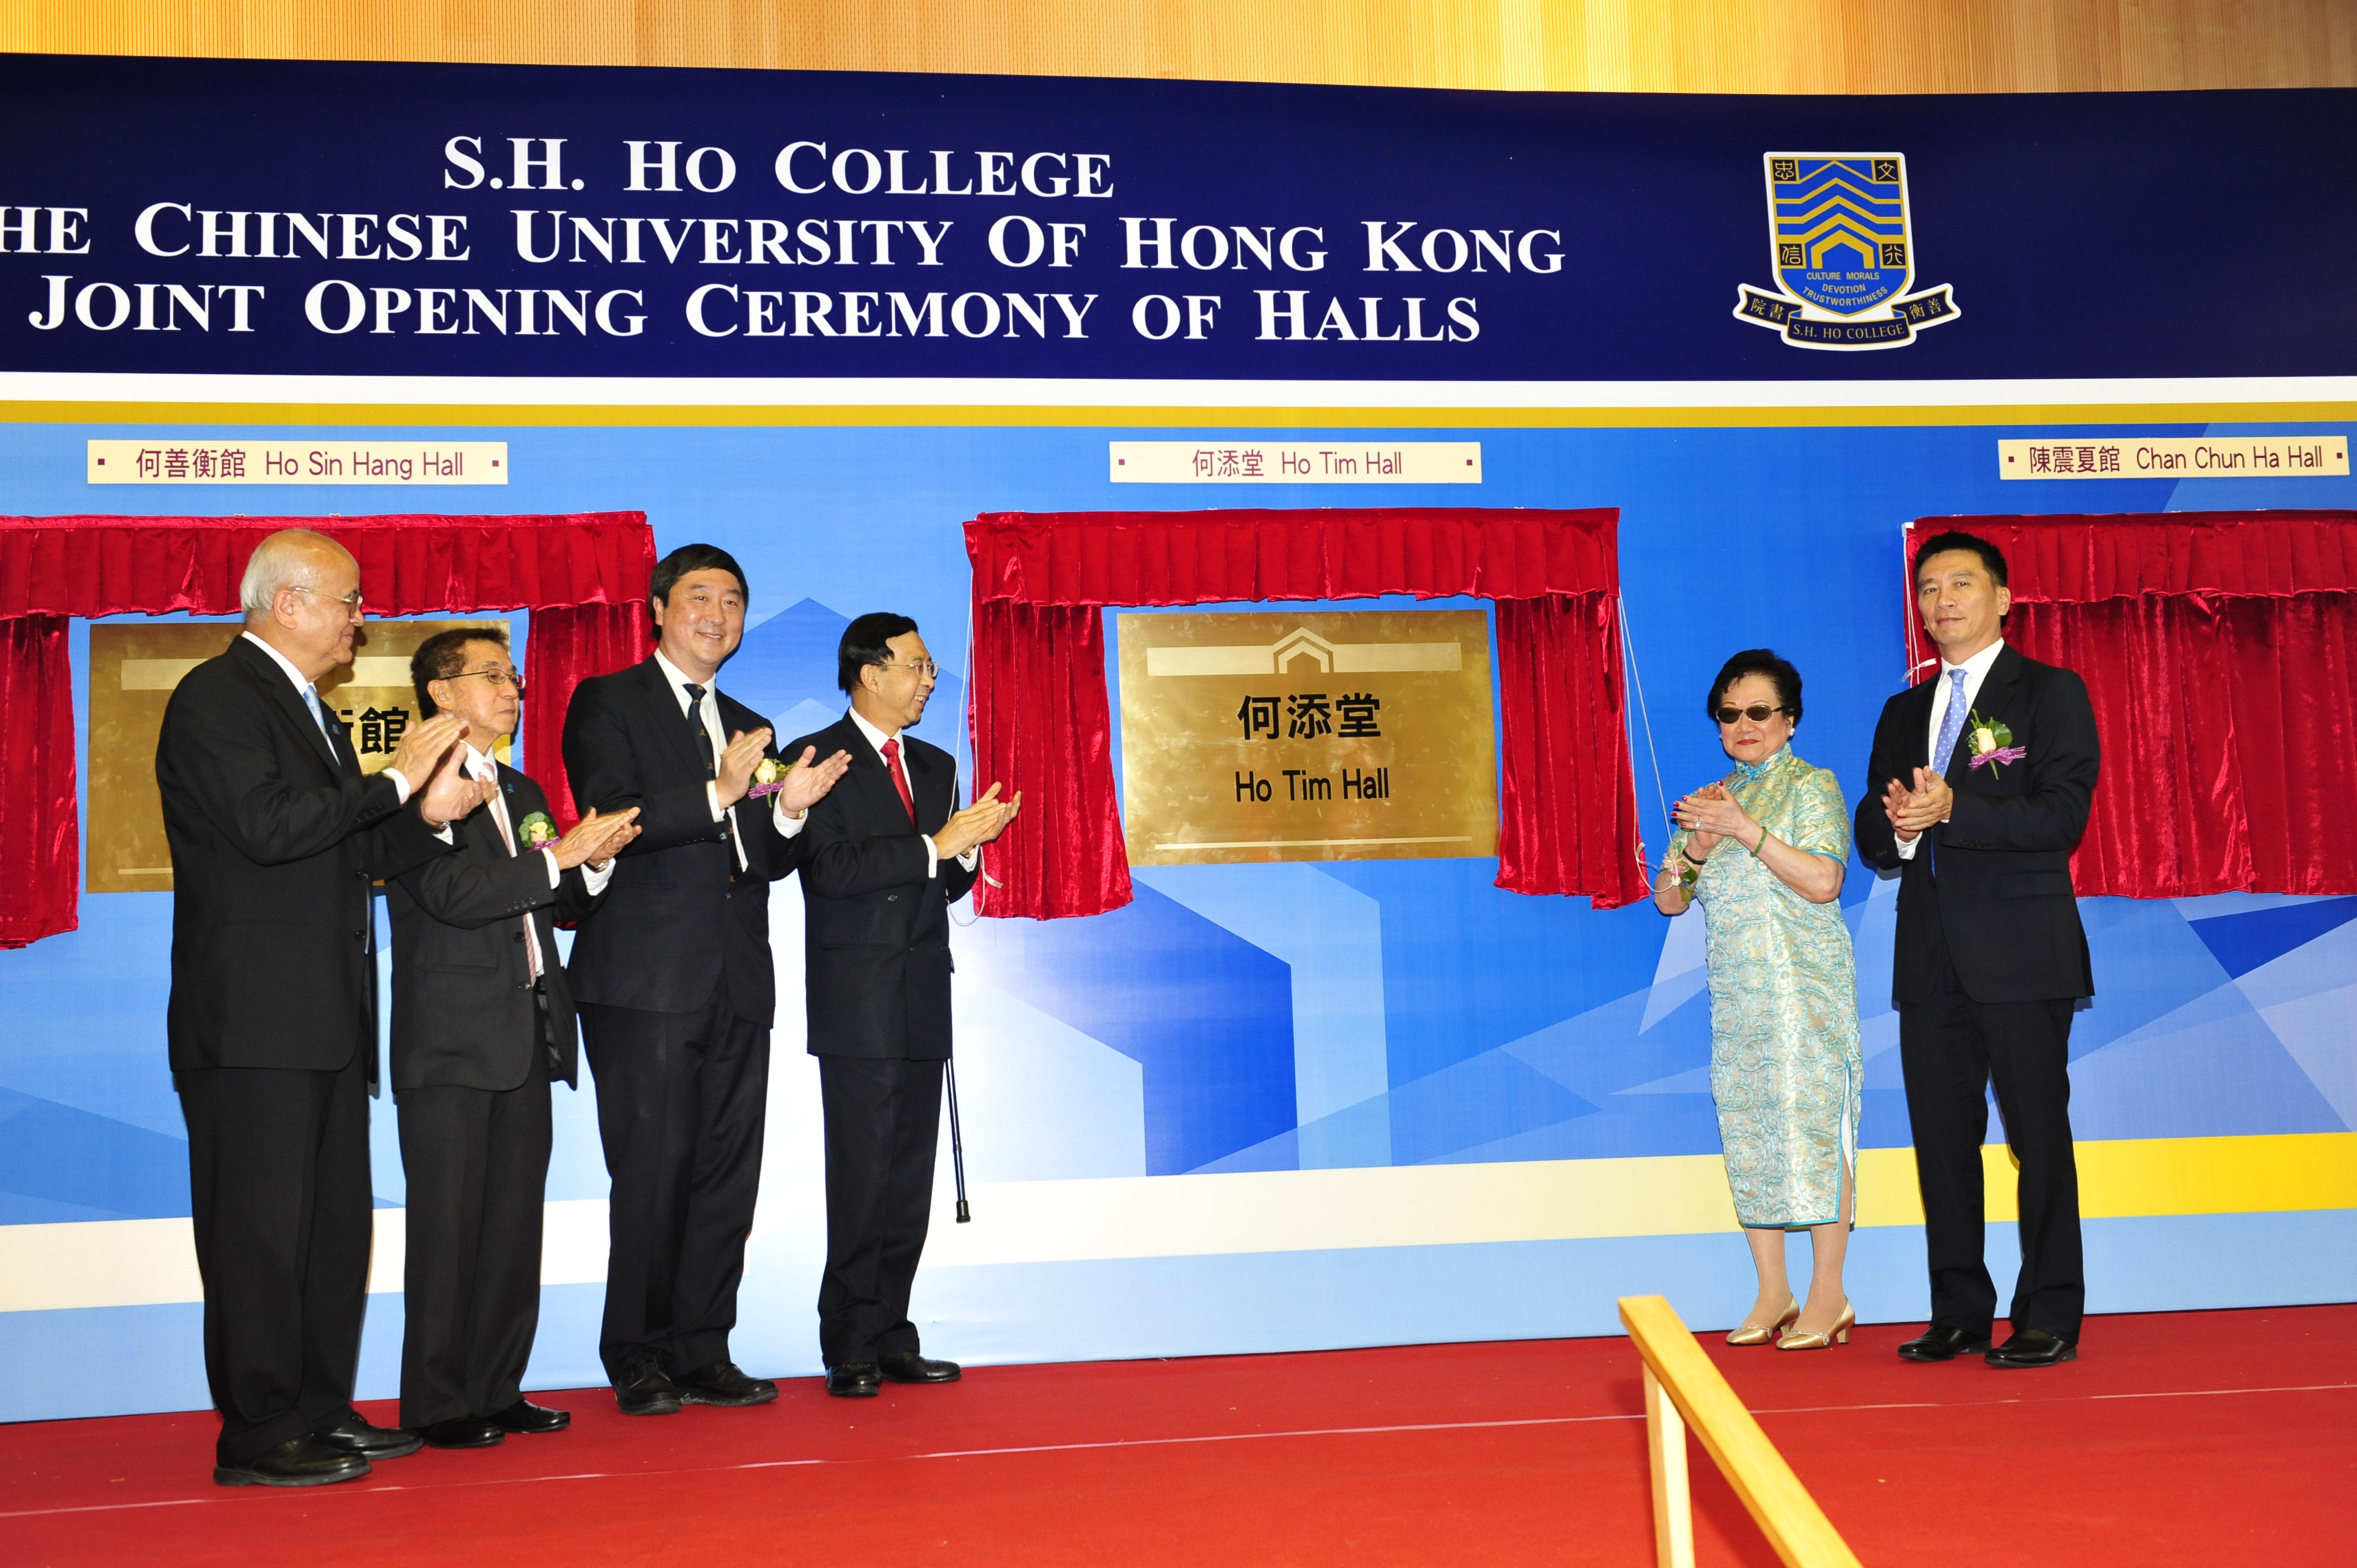 (From left) Prof. Samuel Sun, Dr. Tzu-leung Ho, Prof. Joseph Sung, Dr .Vincent Cheng, Mrs. Ho Tim and Mr. Norman Ho unveil the plaque of Ho Tim Hall.